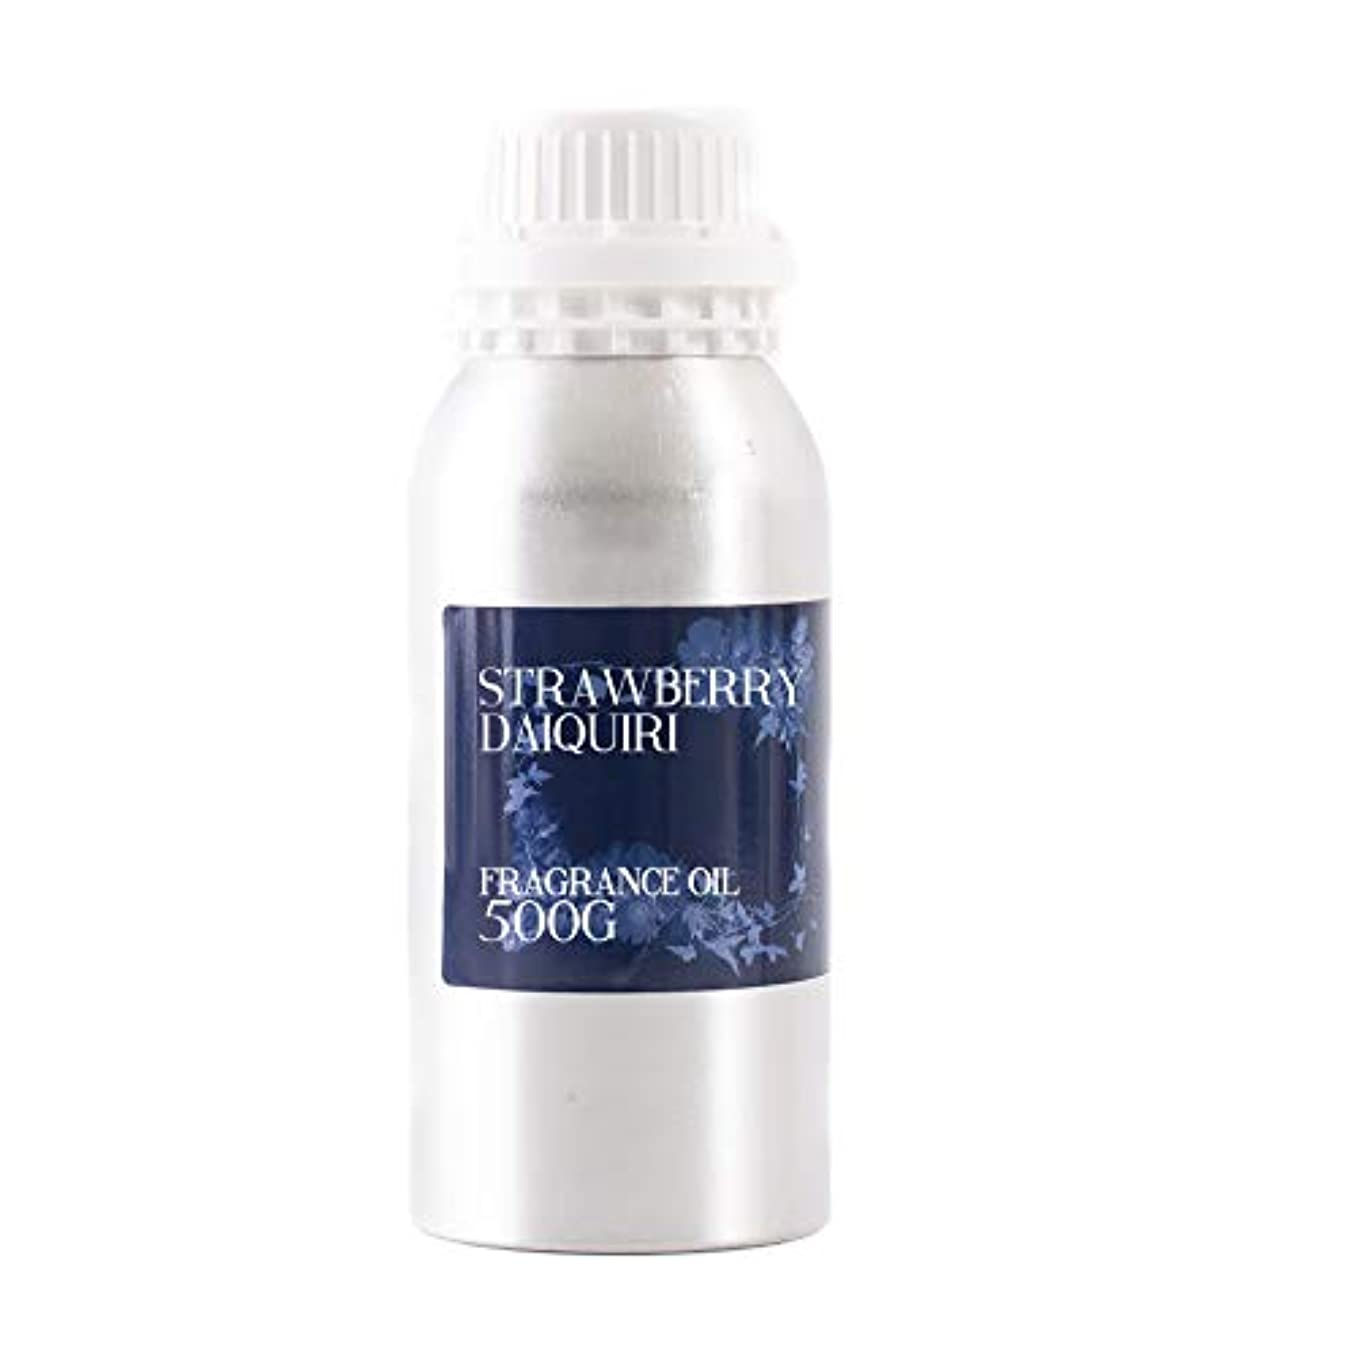 スティーブンソン担保意識Mystic Moments | Strawberry Daiquiri Fragrance Oil - 500g